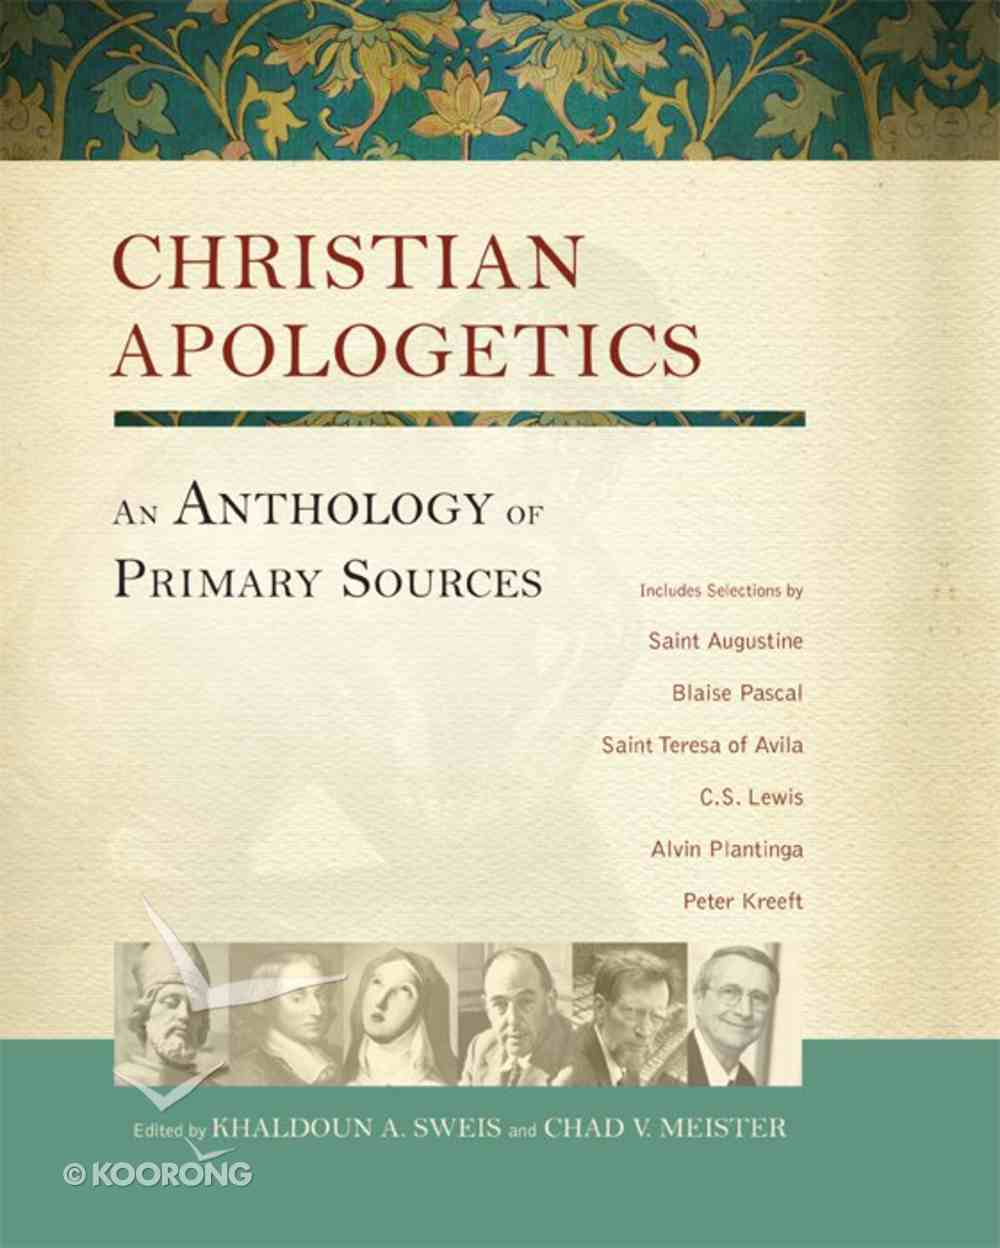 Christian Apologetics: An Anthology of Primary Sources eBook